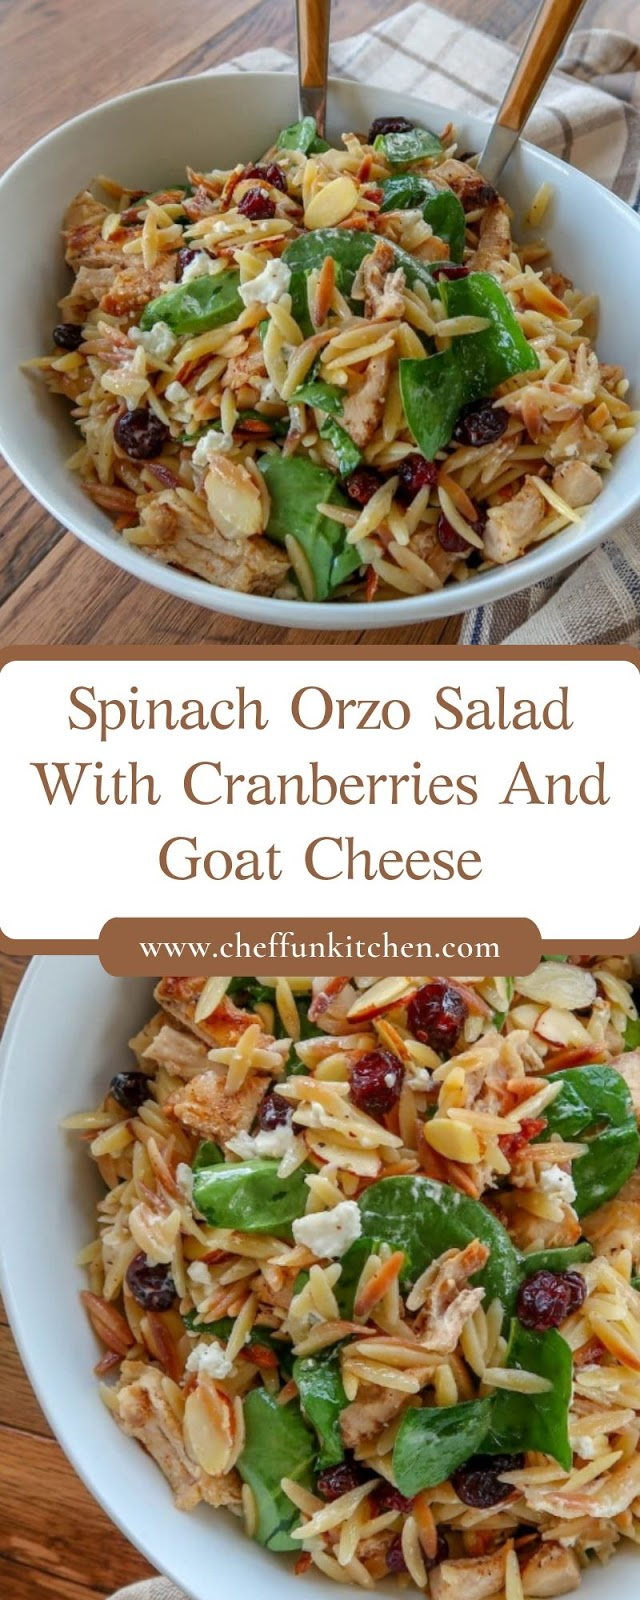 Spinach Orzo Salad With Cranberries And Goat Cheese